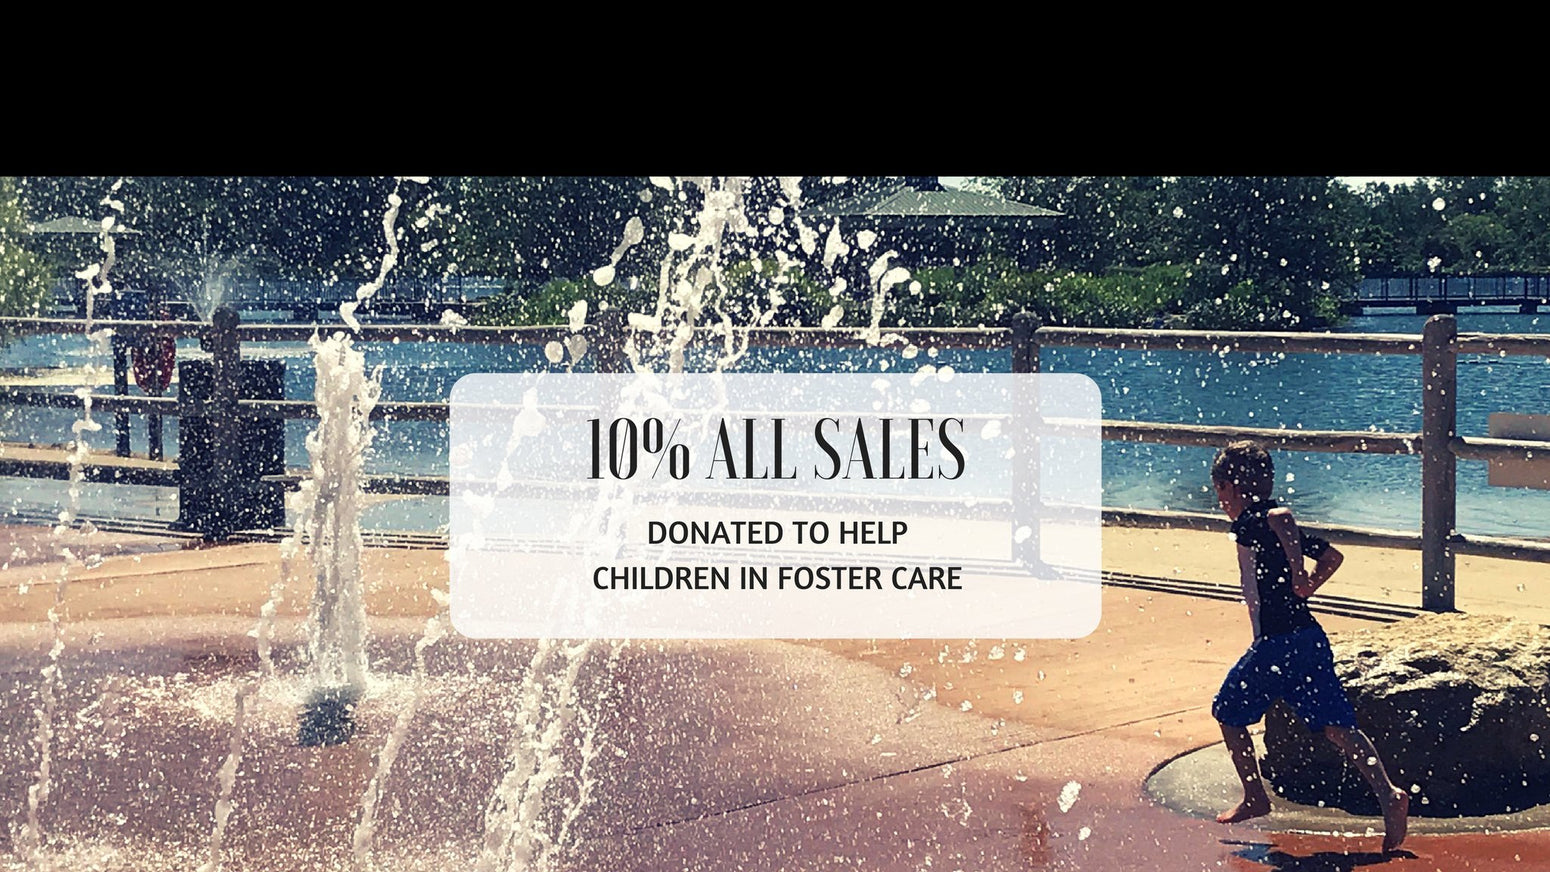 10% sales donated to fulfill wishes of children in foster care